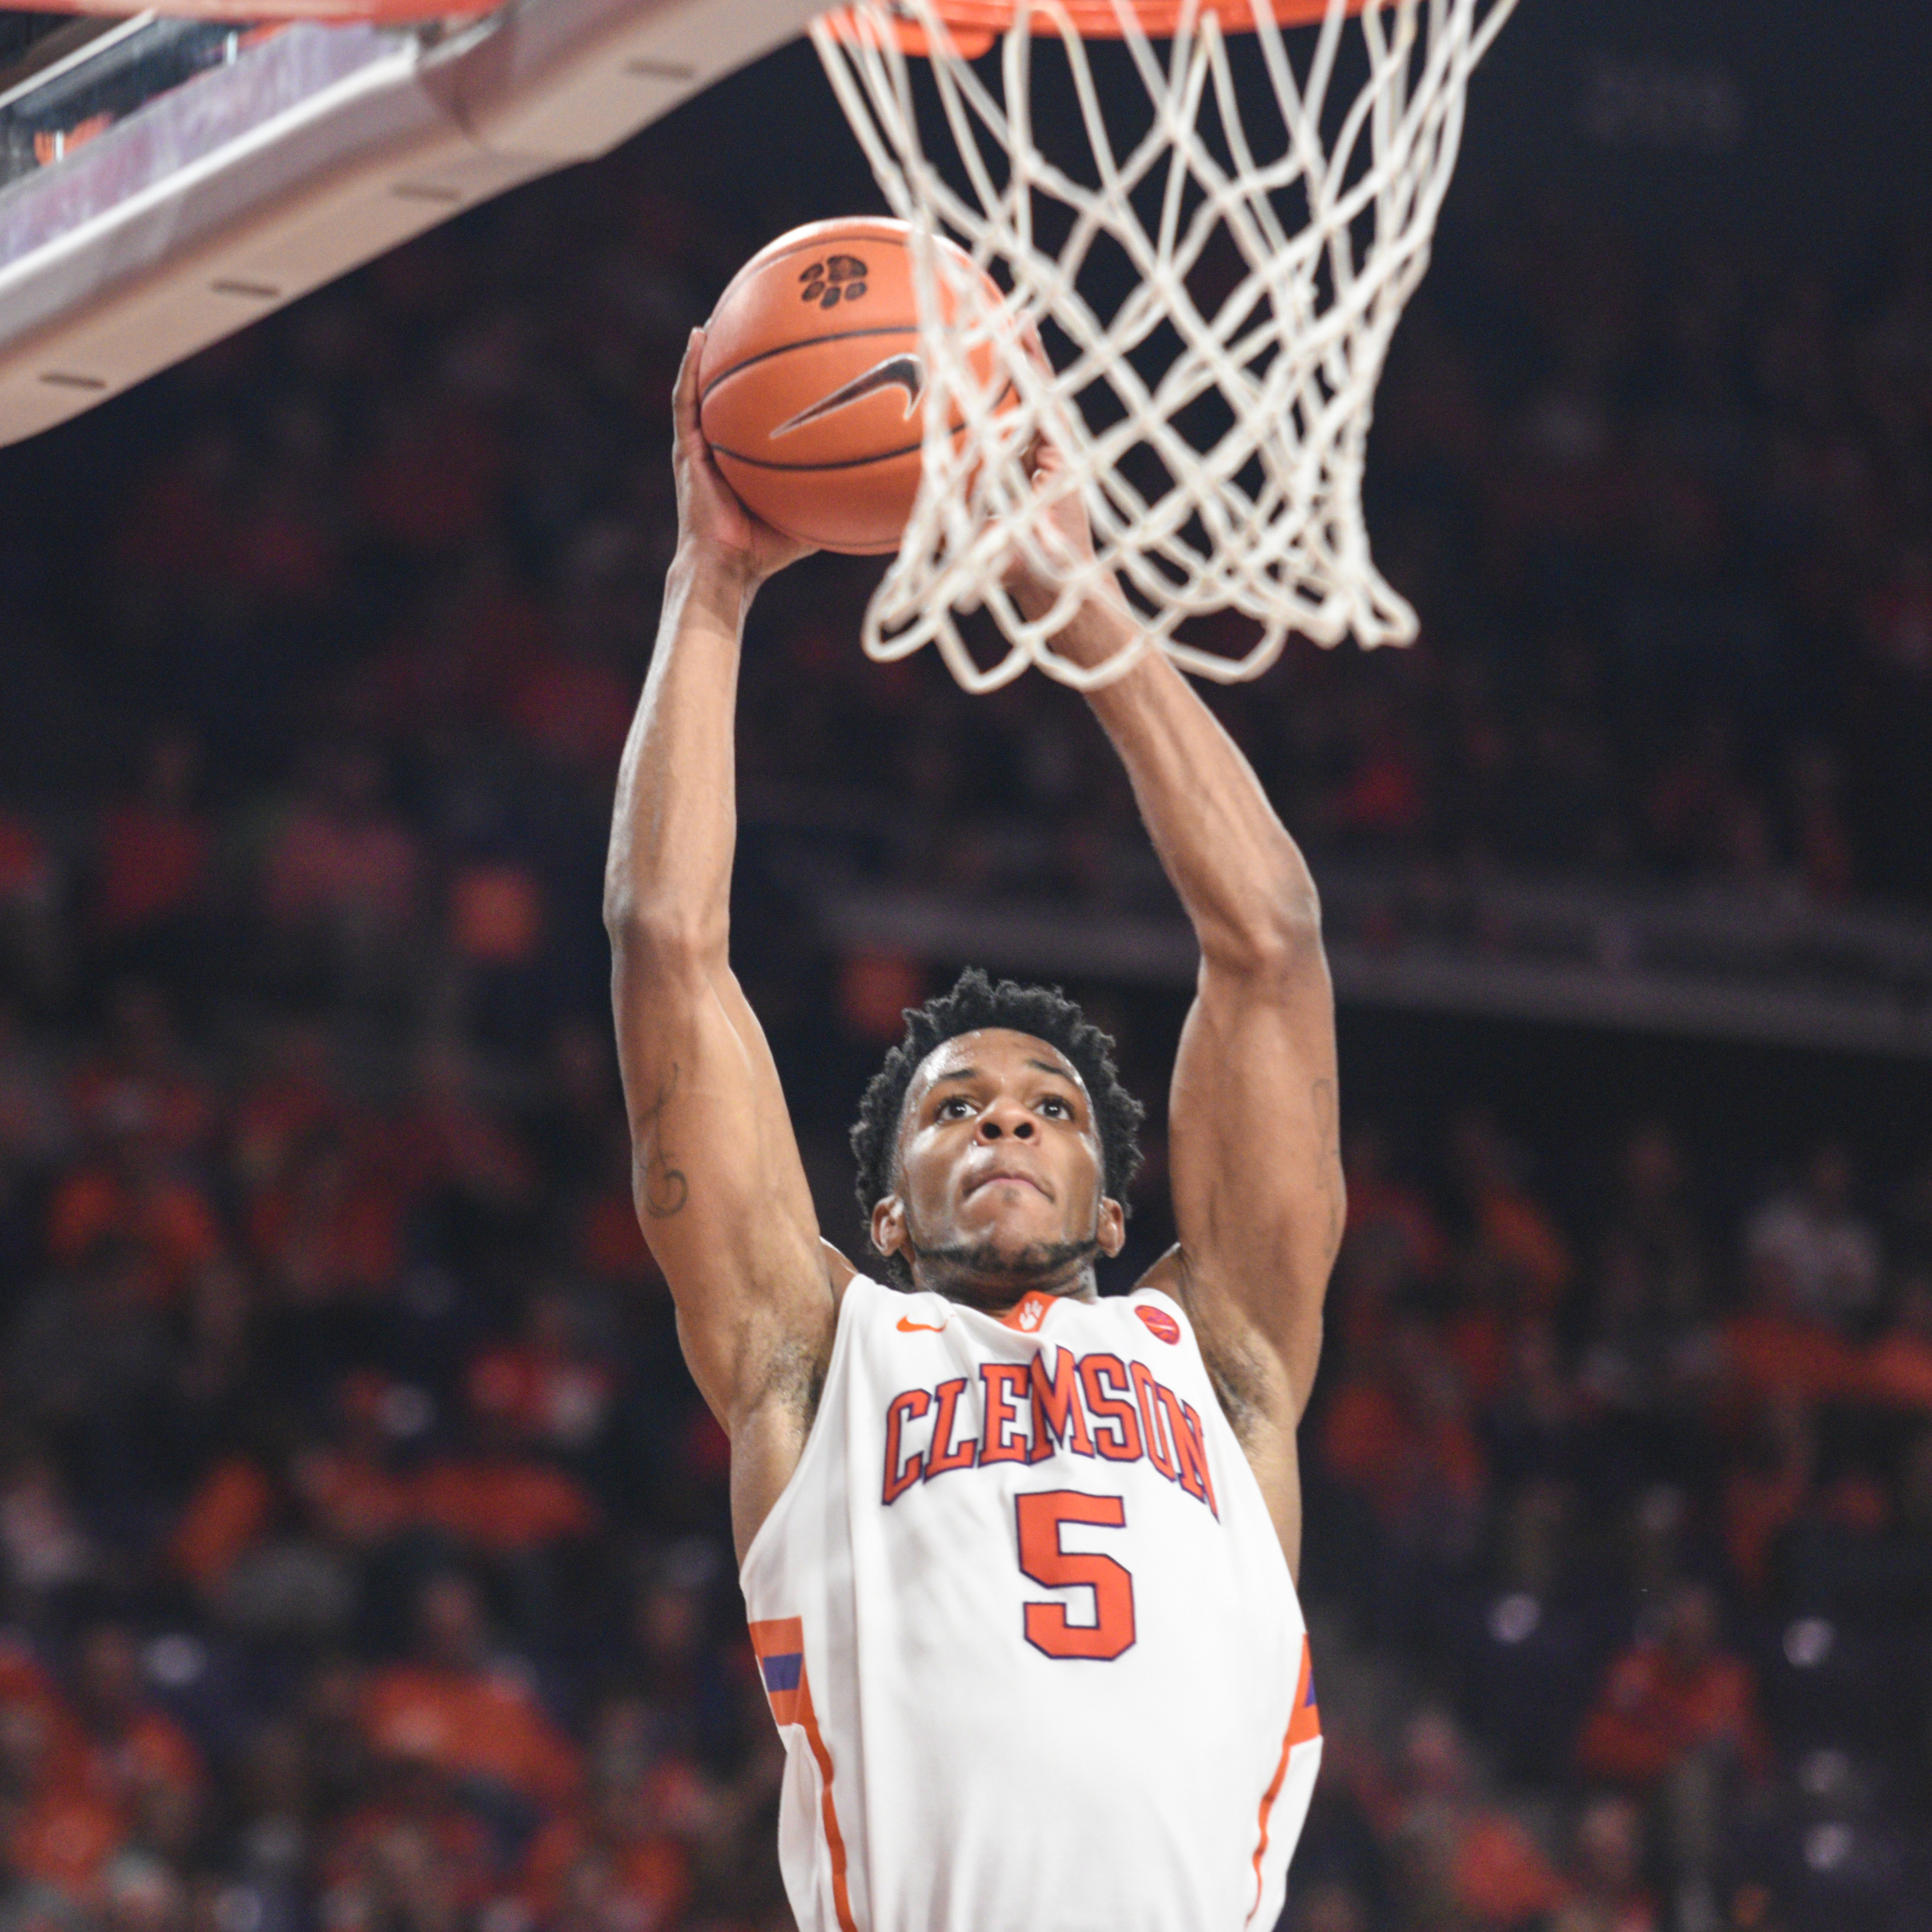 Clemson Falls to No. 18 Virginia, 77-73